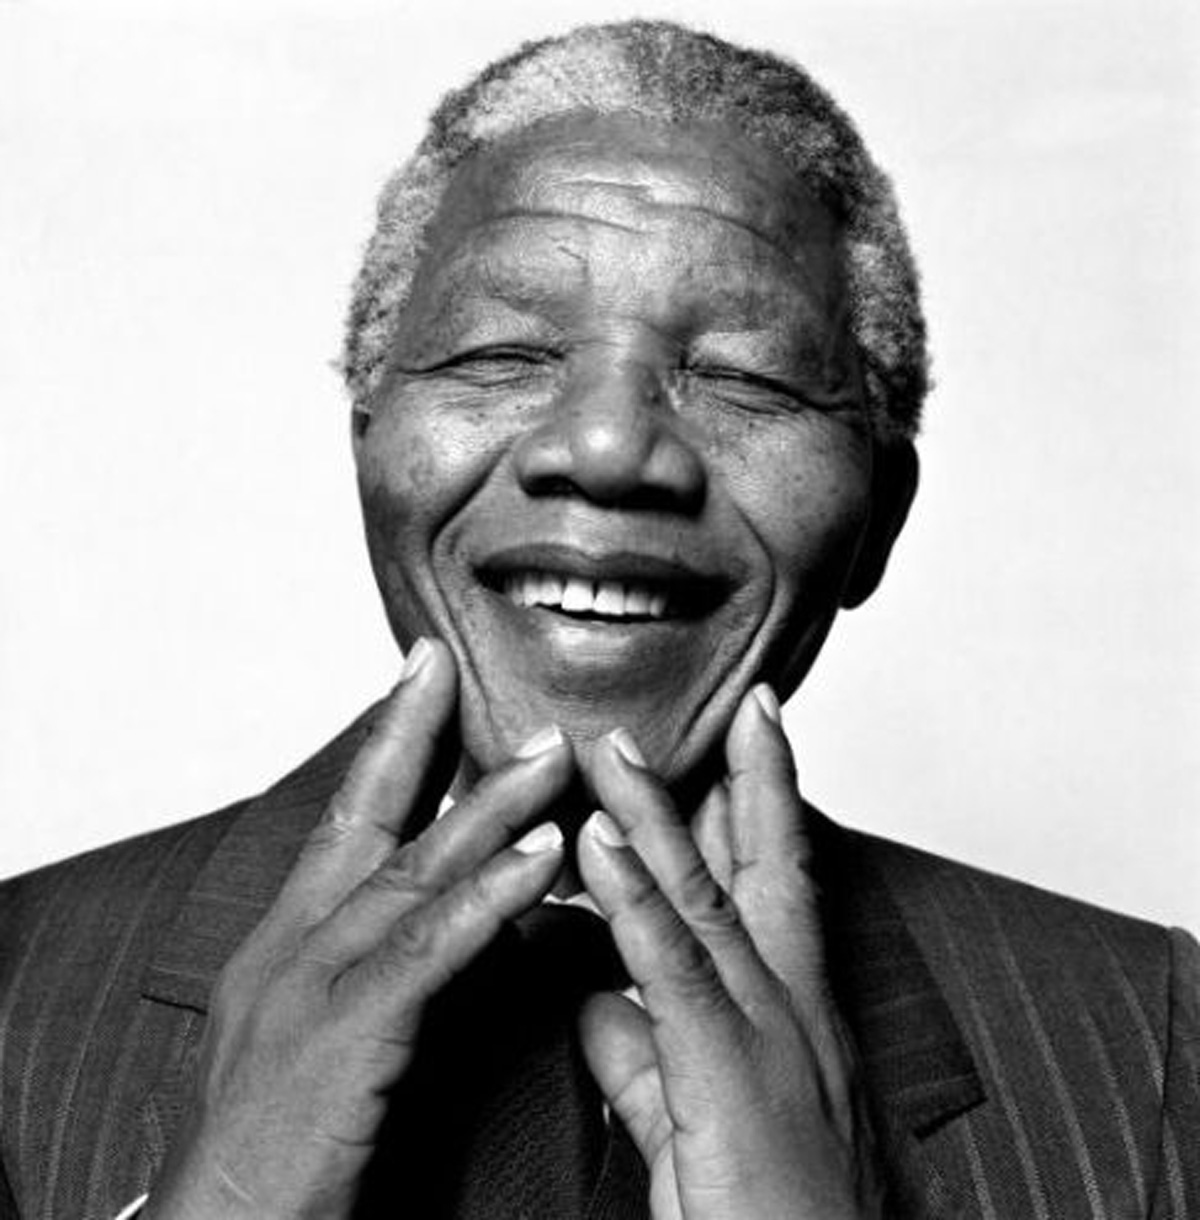 Nelson Mandela Blackisreallybeautiful